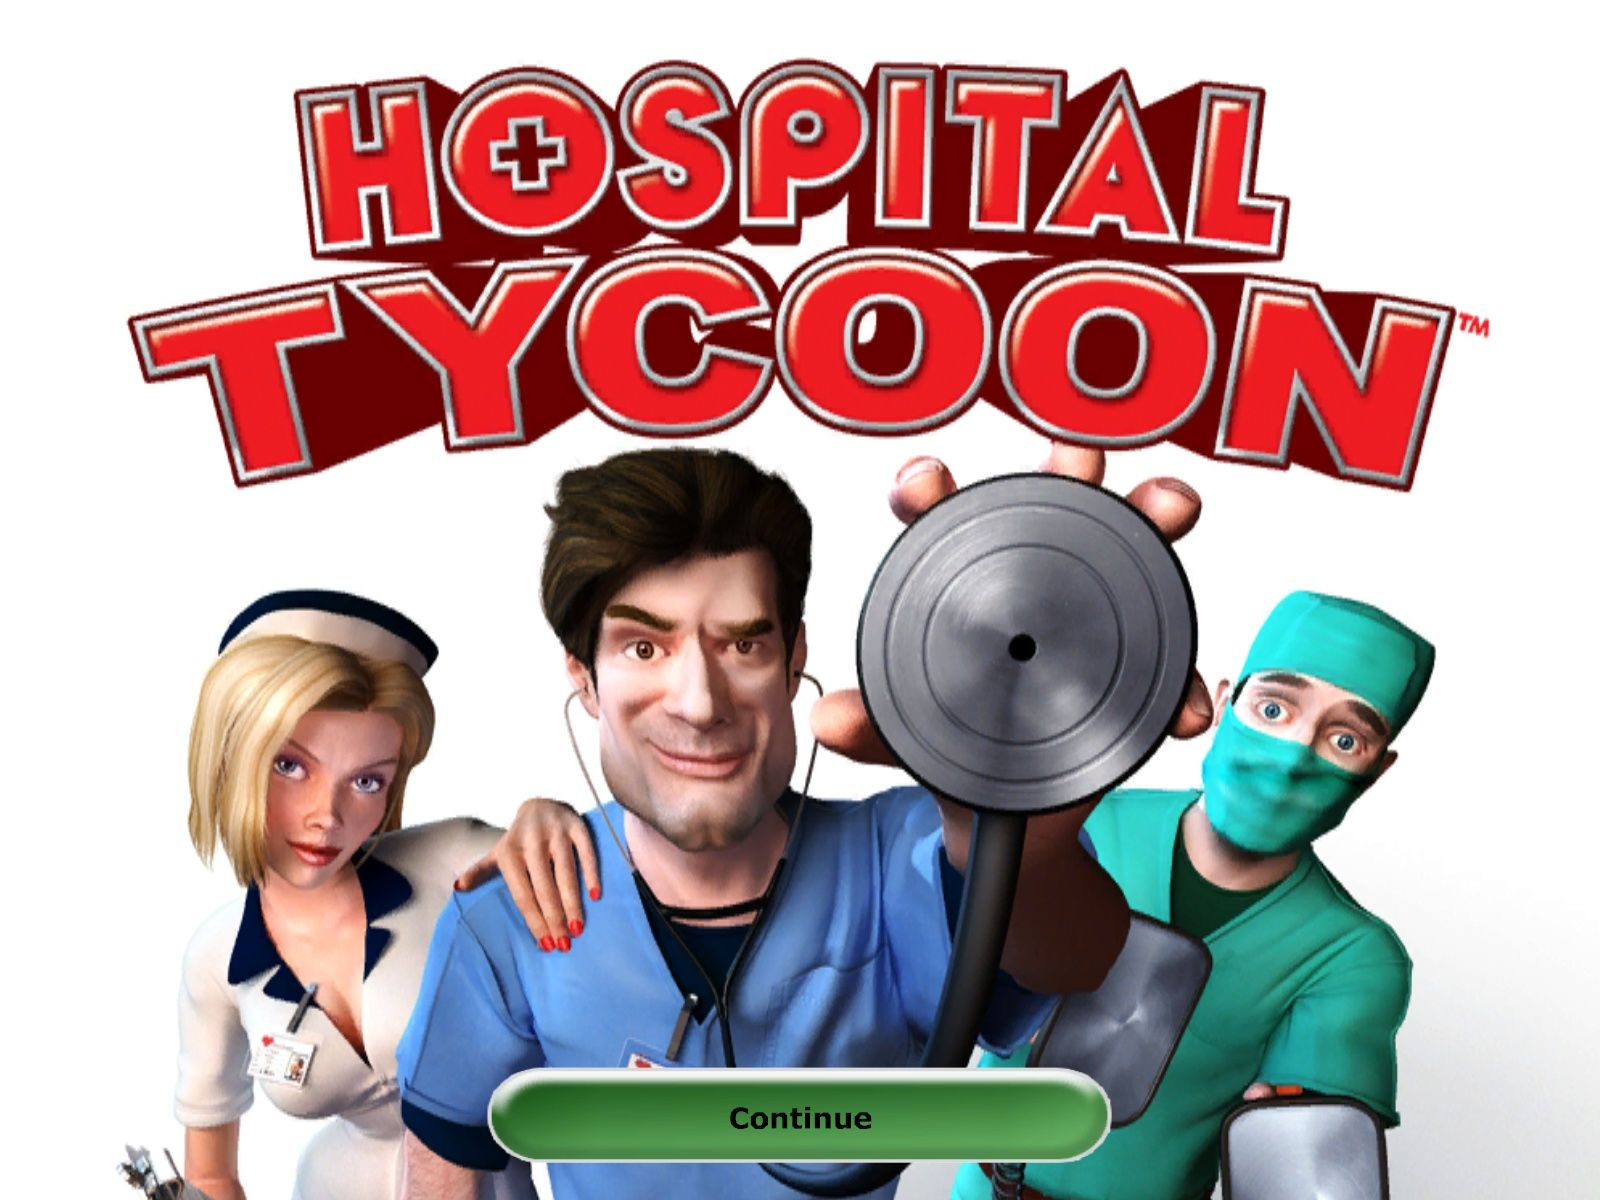 Hospital Tycoon Windows Title screen